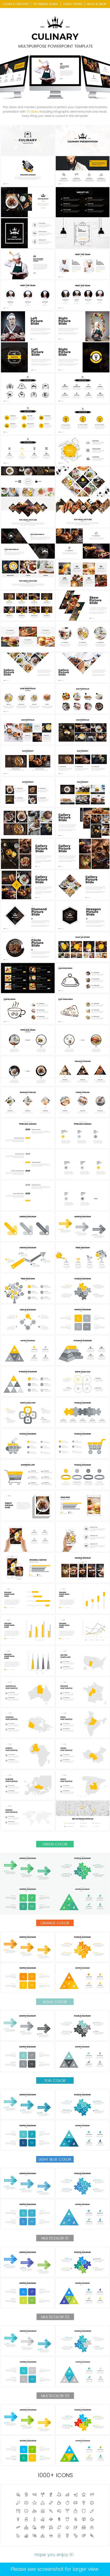 Culinary  Powerpoint PPTX #corporate #infographics • Download ➝ https://graphicriver.net/item/culinary-multipurposepowerpoint-template/19595775?ref=pxcr